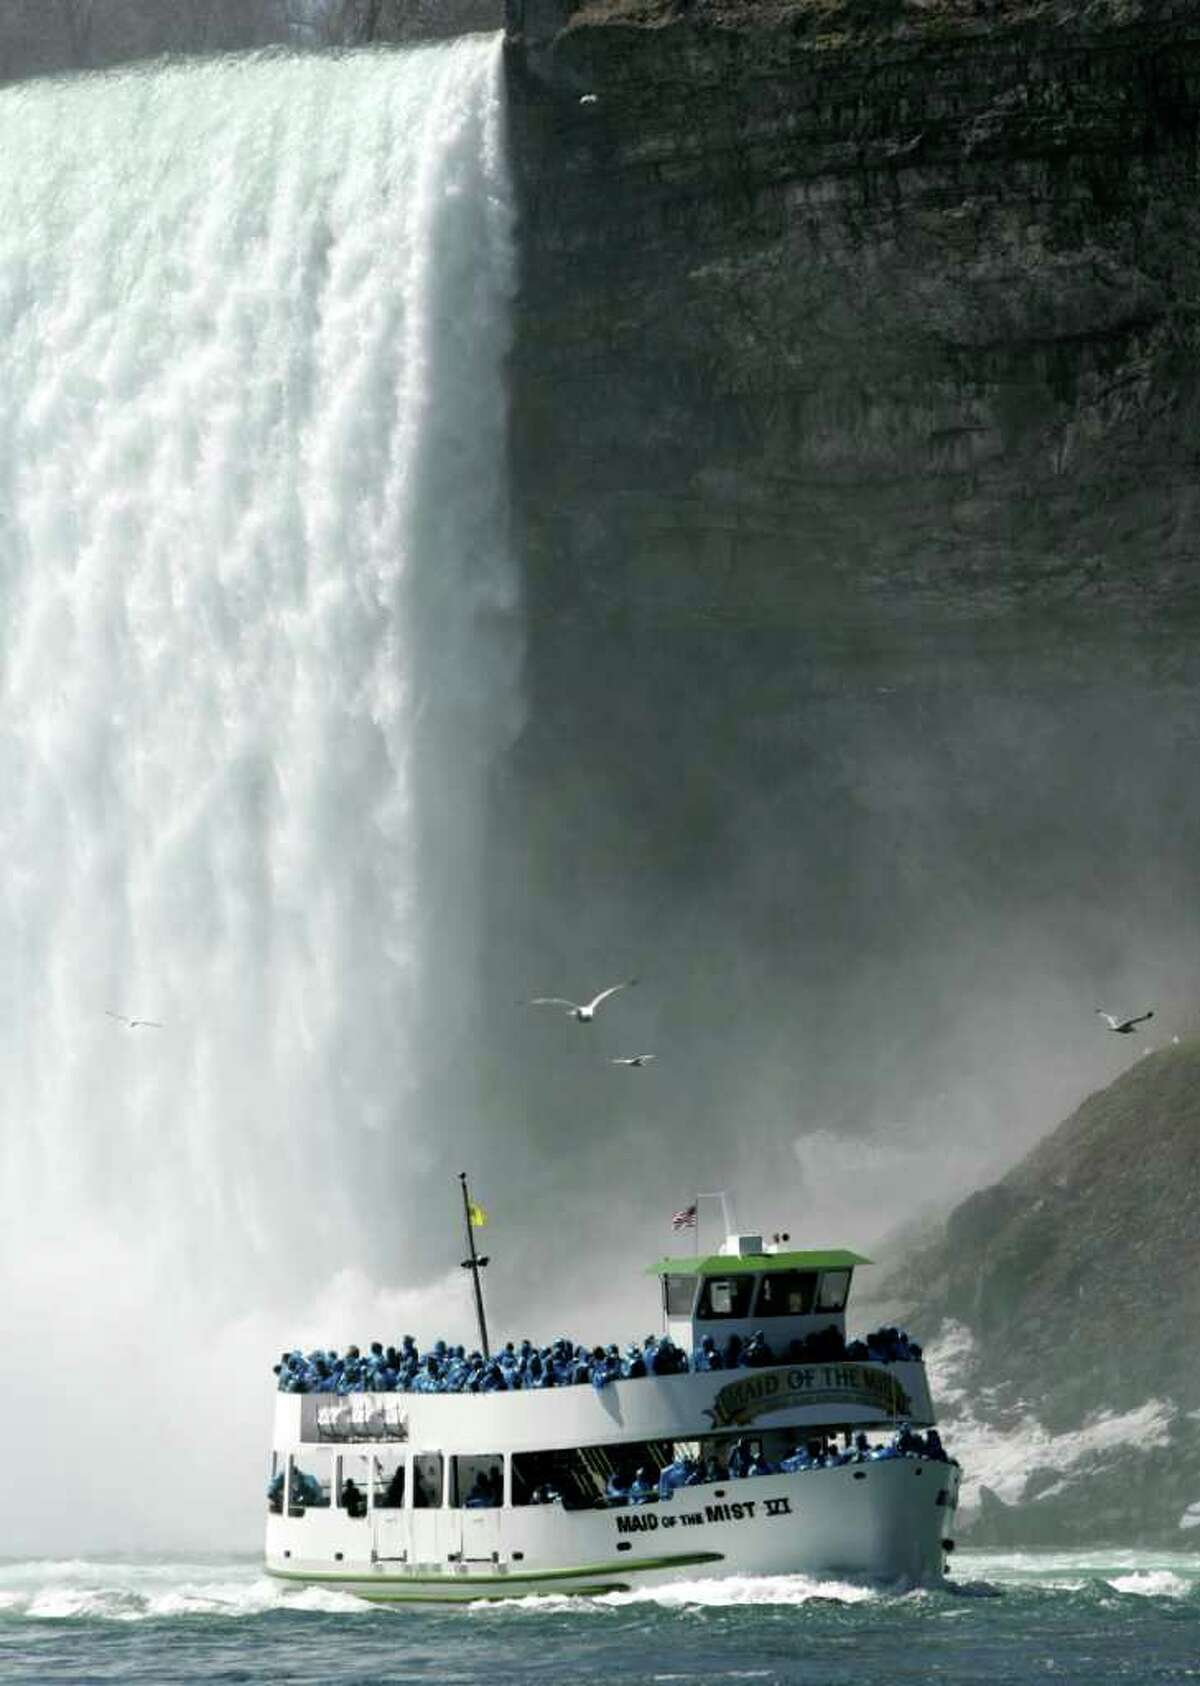 FILE - In this April 21, 2005 file photo, a Maid of the Mist ship returns from the base of the Horseshoe Falls, as seen from a ship leaving Niagara Falls, N.Y. (AP Photo/David Duprey, File)